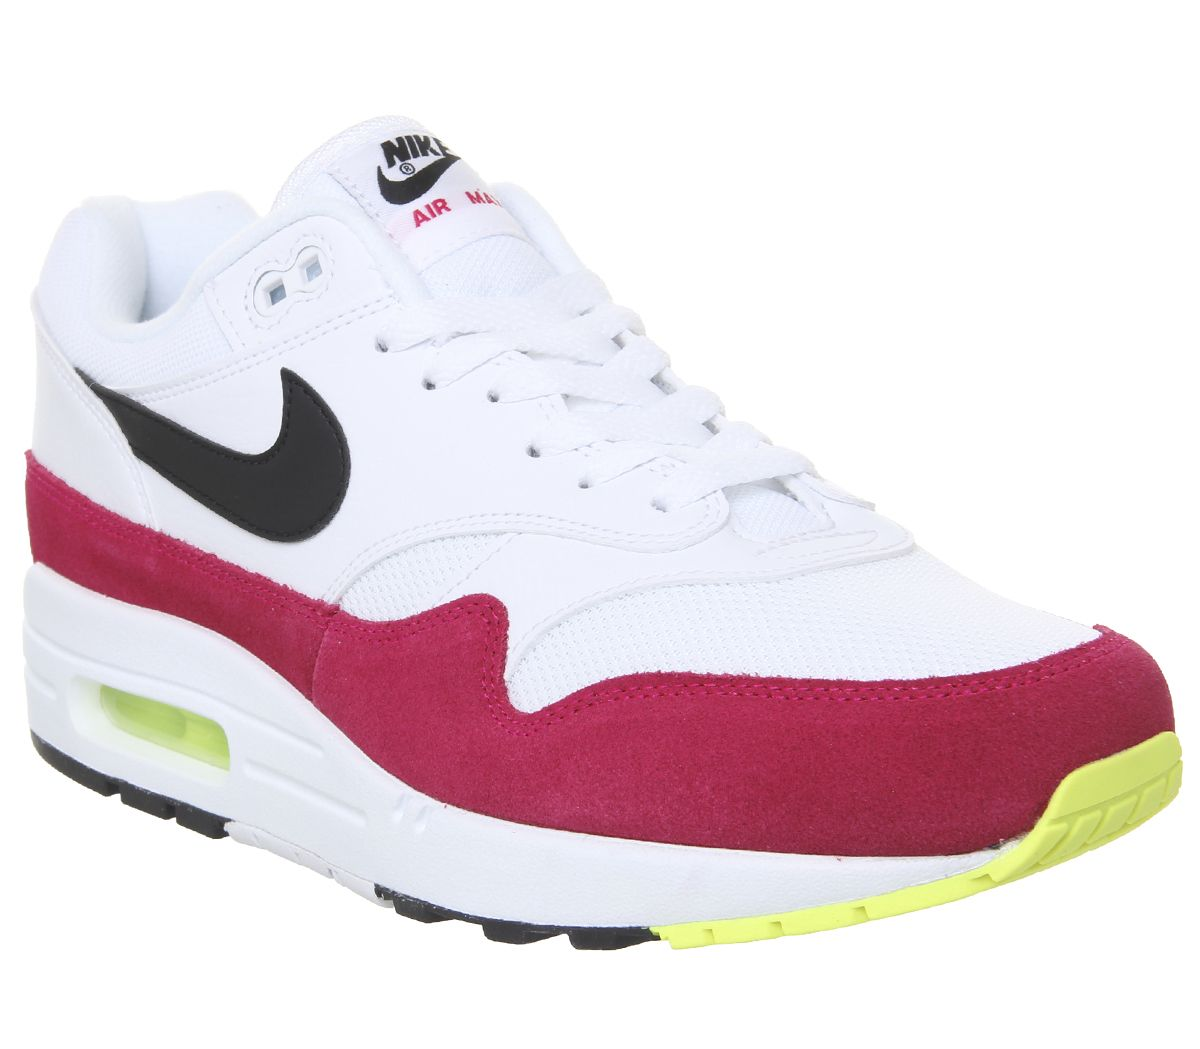 official photos dccfb e2392 Nike Air Max 1 Trainers White Black Volt Rush Pink - His trainers